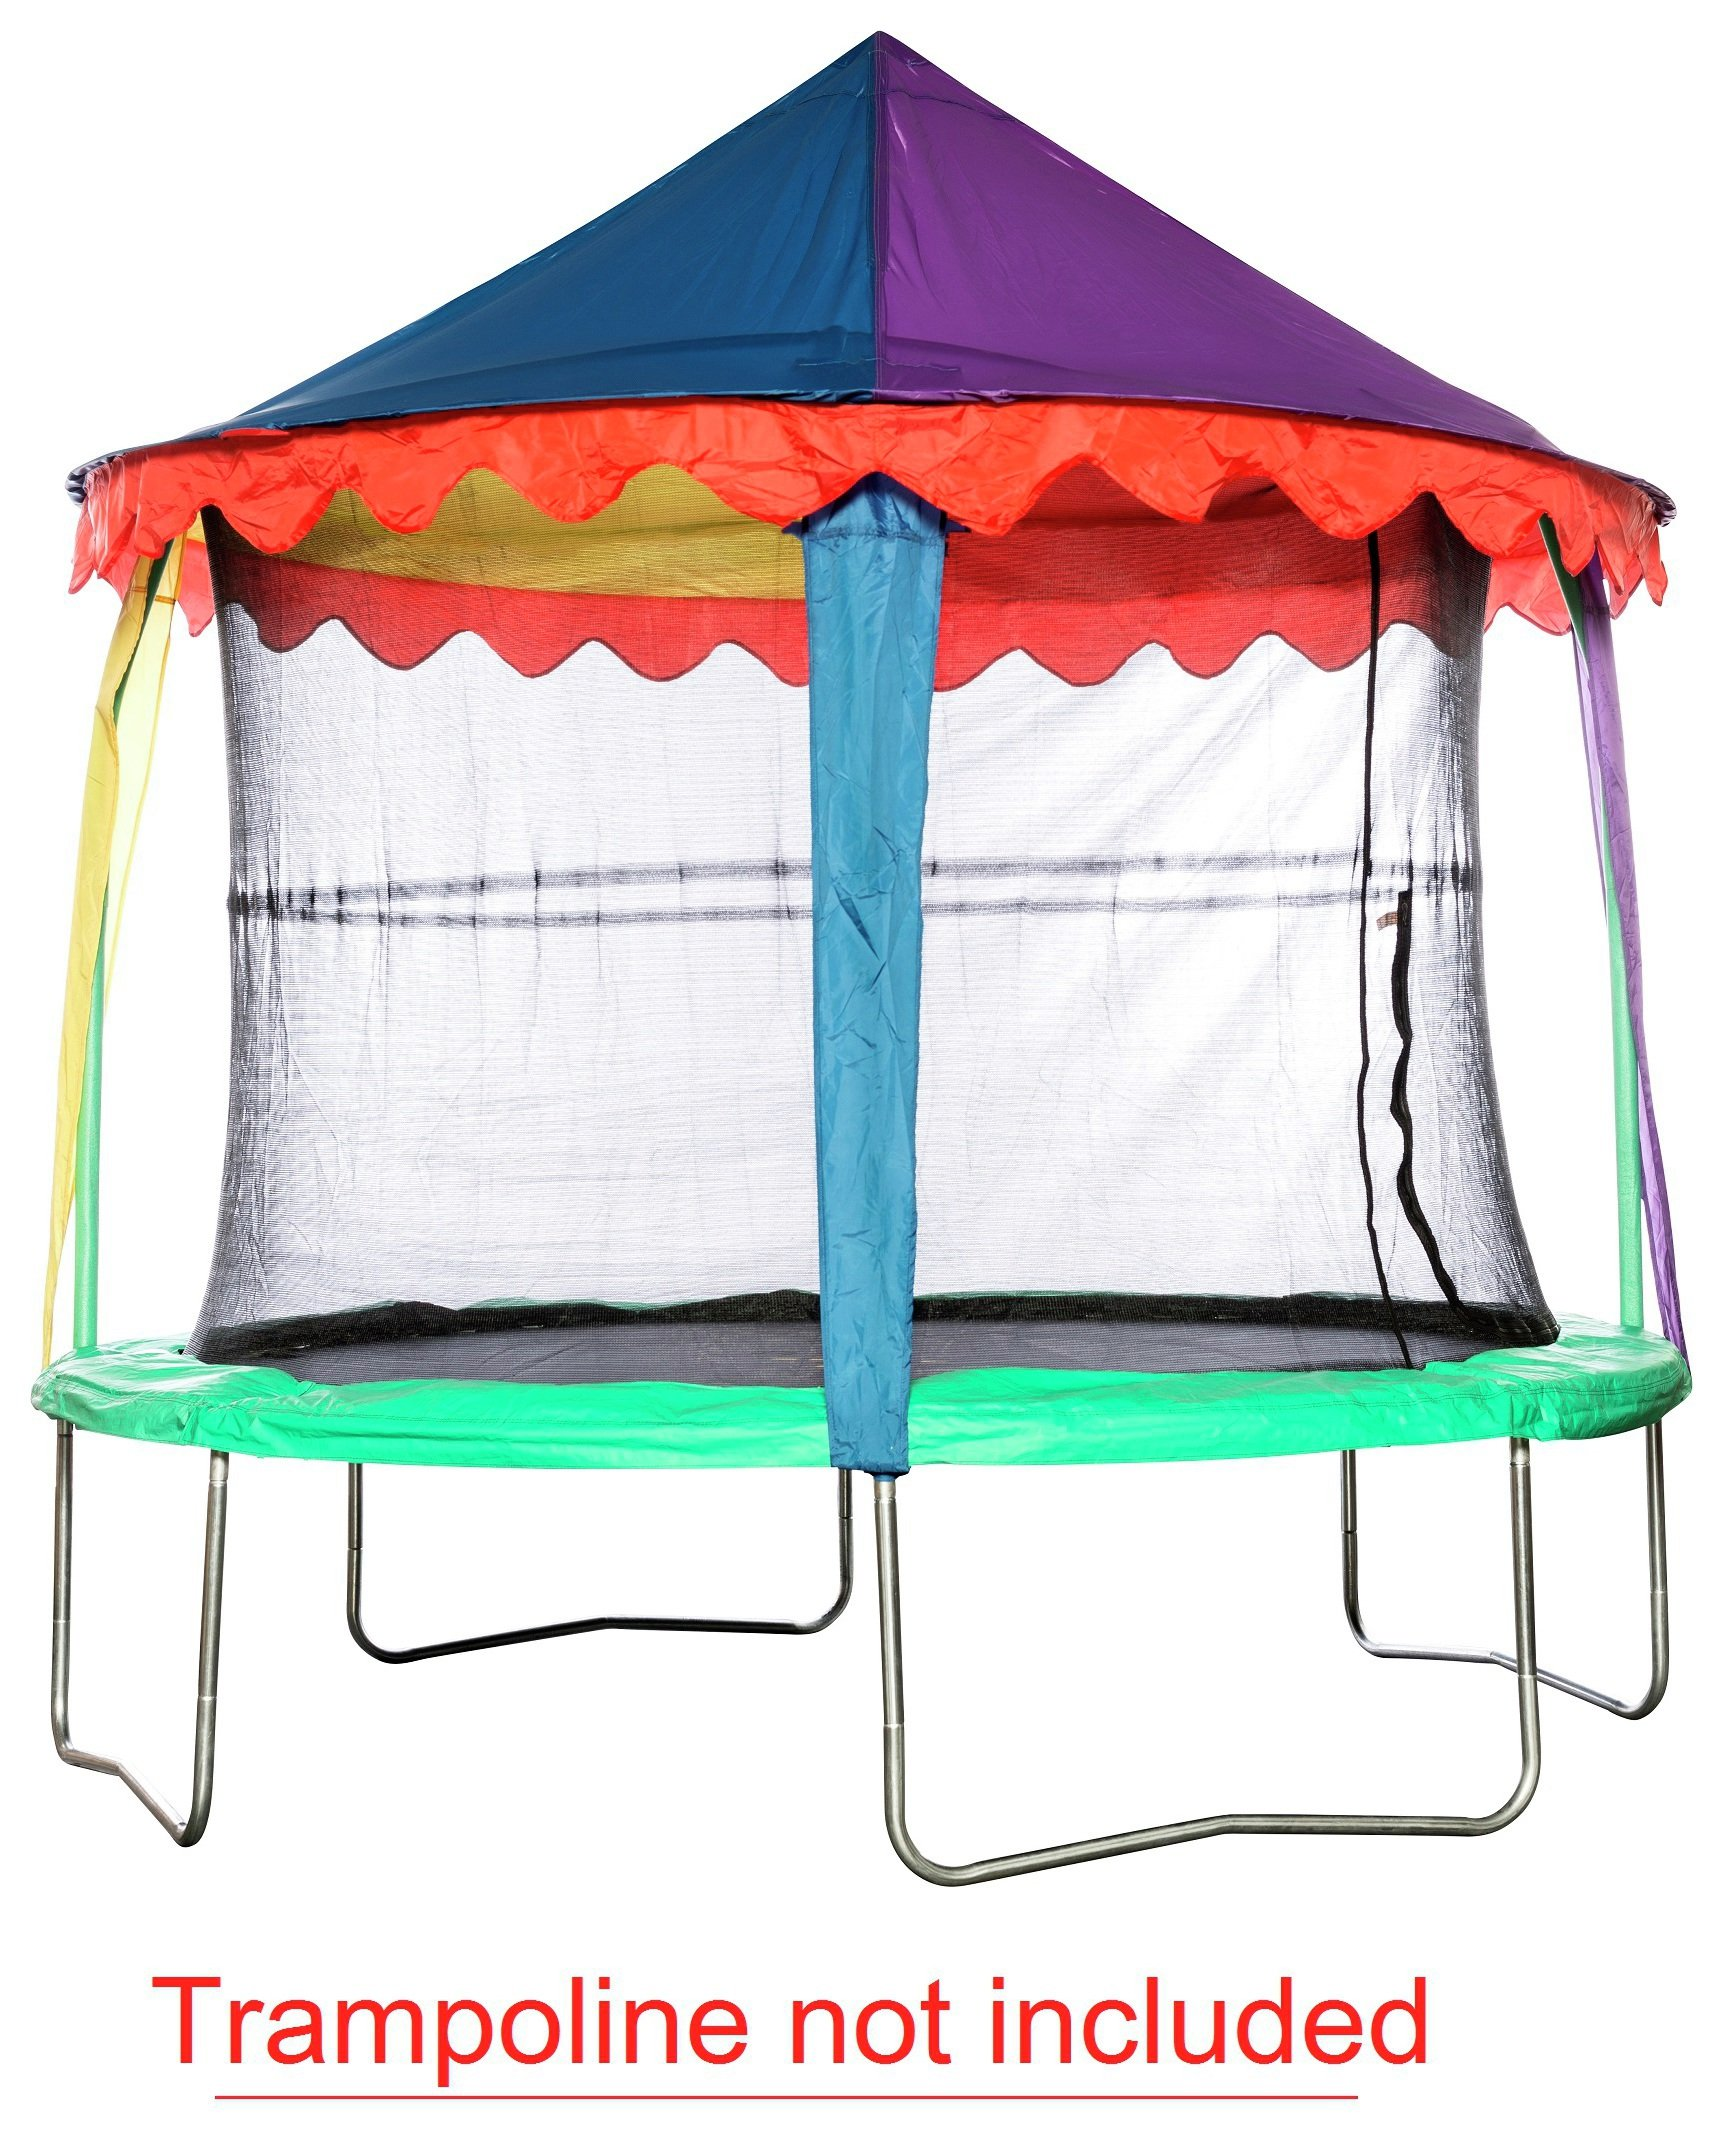 Jumpking 8ft Circus Tent Canopy.